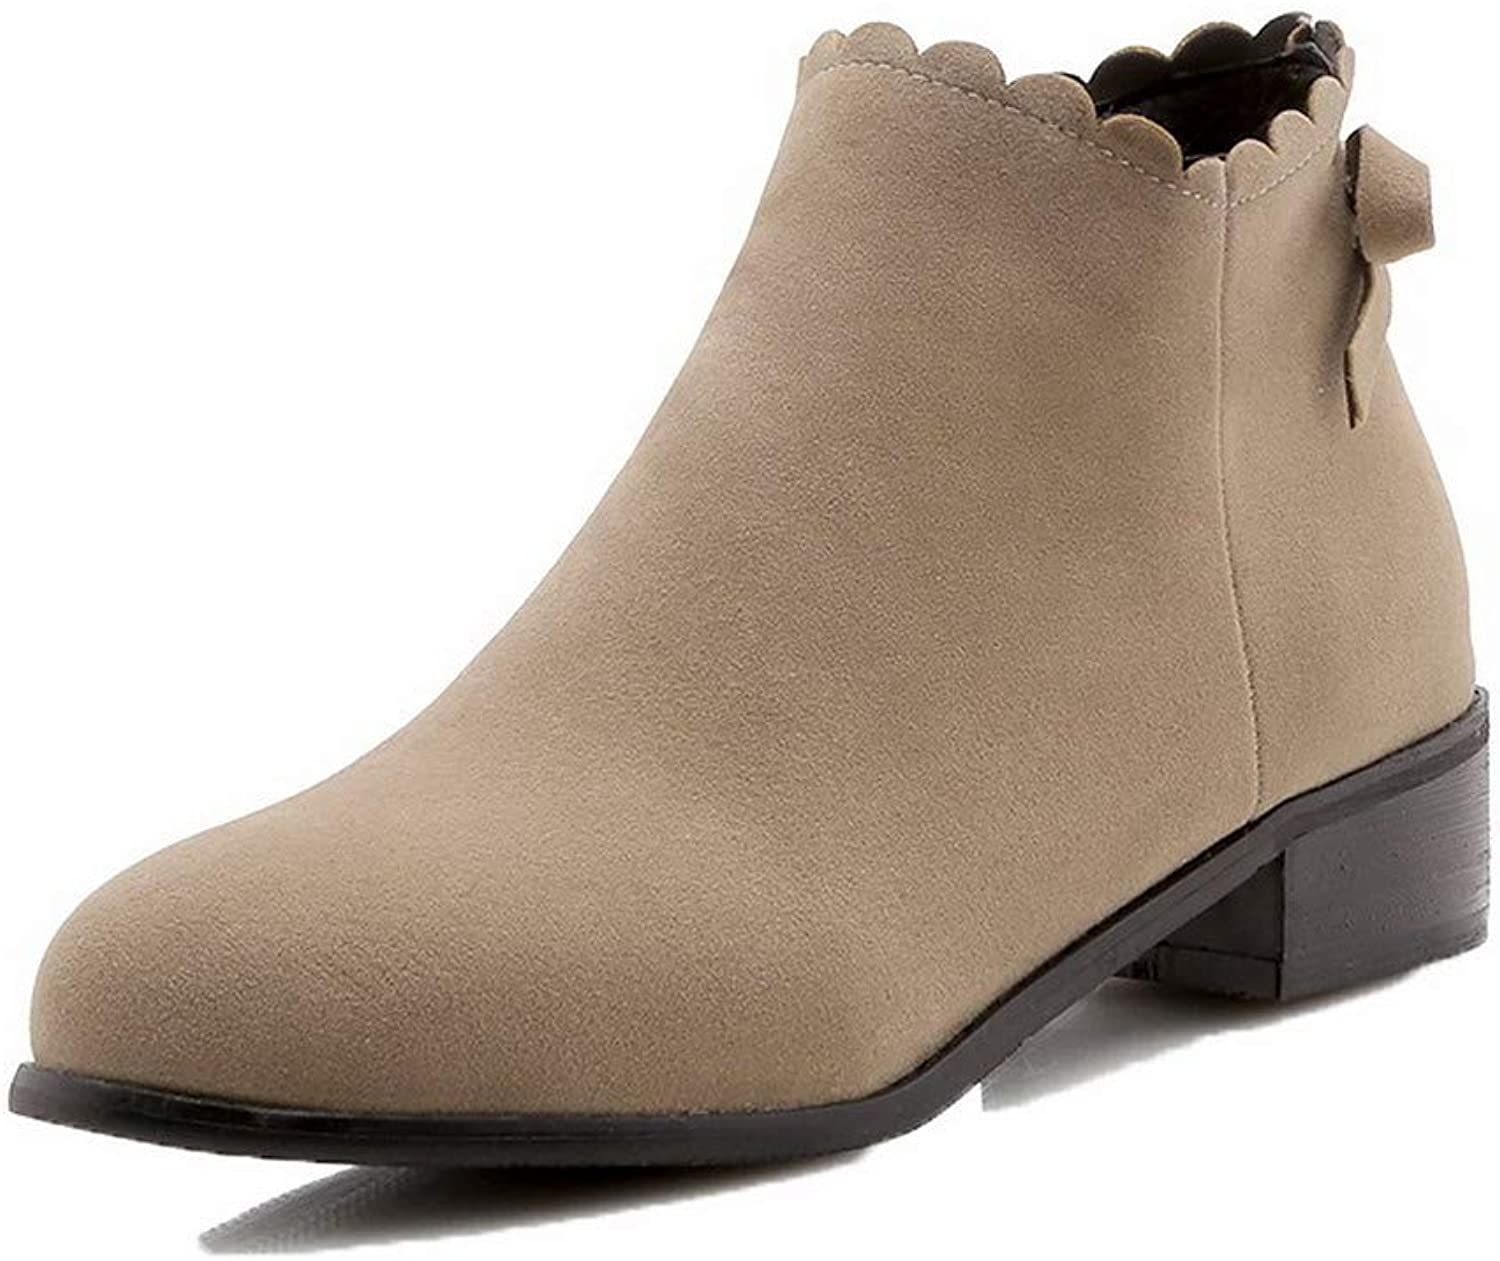 AllhqFashion Women's Ankle-High Zipper Frosted Low-Heels Round-Toe Boots, FBUXD119491